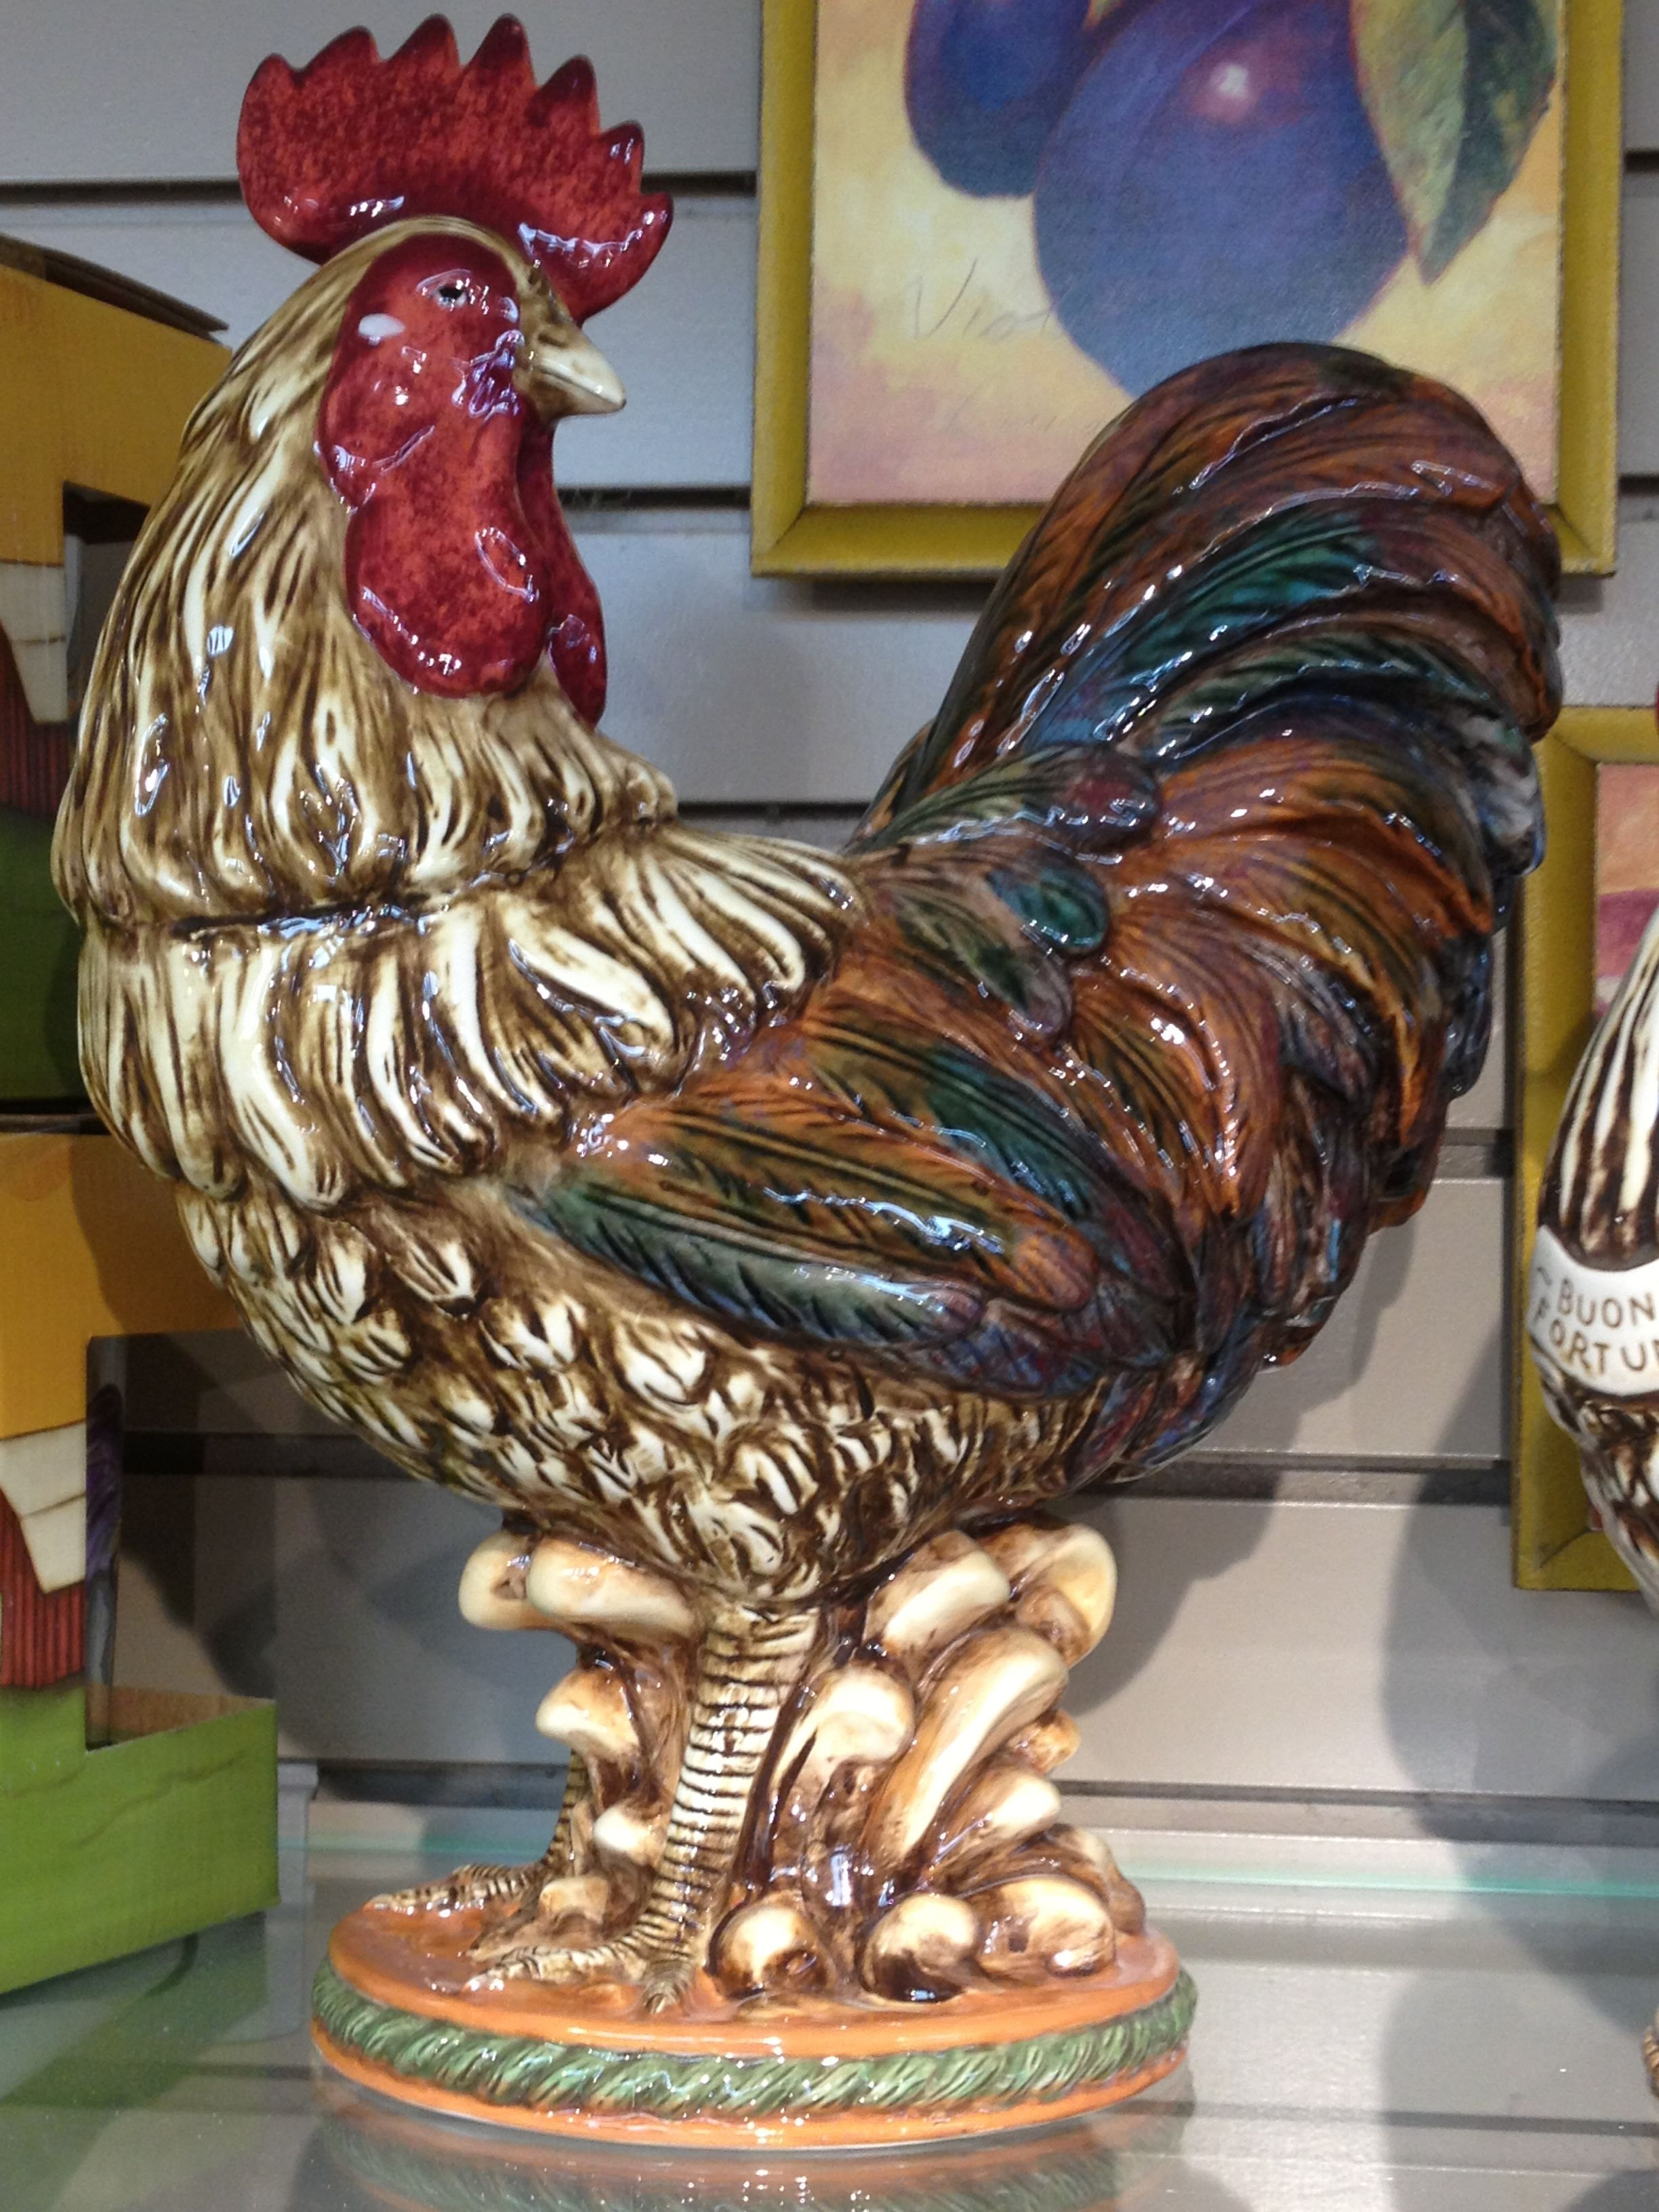 New ceramic roosters available in two sizes